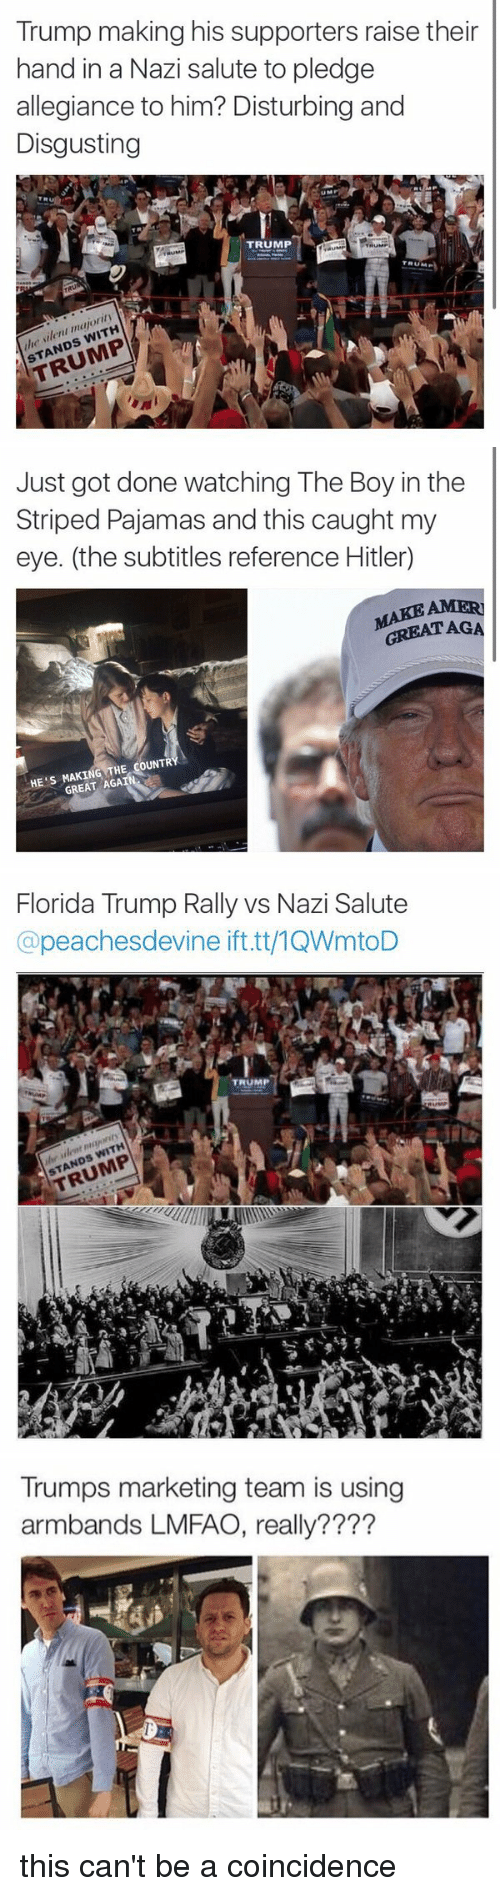 Caught My Eye: Trump making his supporters raise their  hand in a Nazi salute to pledge  allegiance to him? Disturbing and  Disgusting  TRUMP  TRUM  WITH  STANDS  Just got done watching The Boy in the  Striped Pajamas and this caught my  eye. (the subtitles reference Hitler  GREAT AGA  THE COUNTR  HE S GREAT AGA   Florida Trump Rally vs Nazi Salute  @peaches devine ifttt/1QWmtoD  WITH  STANDS  Trumps marketing team is using  armbands LMFAO, really???? this can't be a coincidence